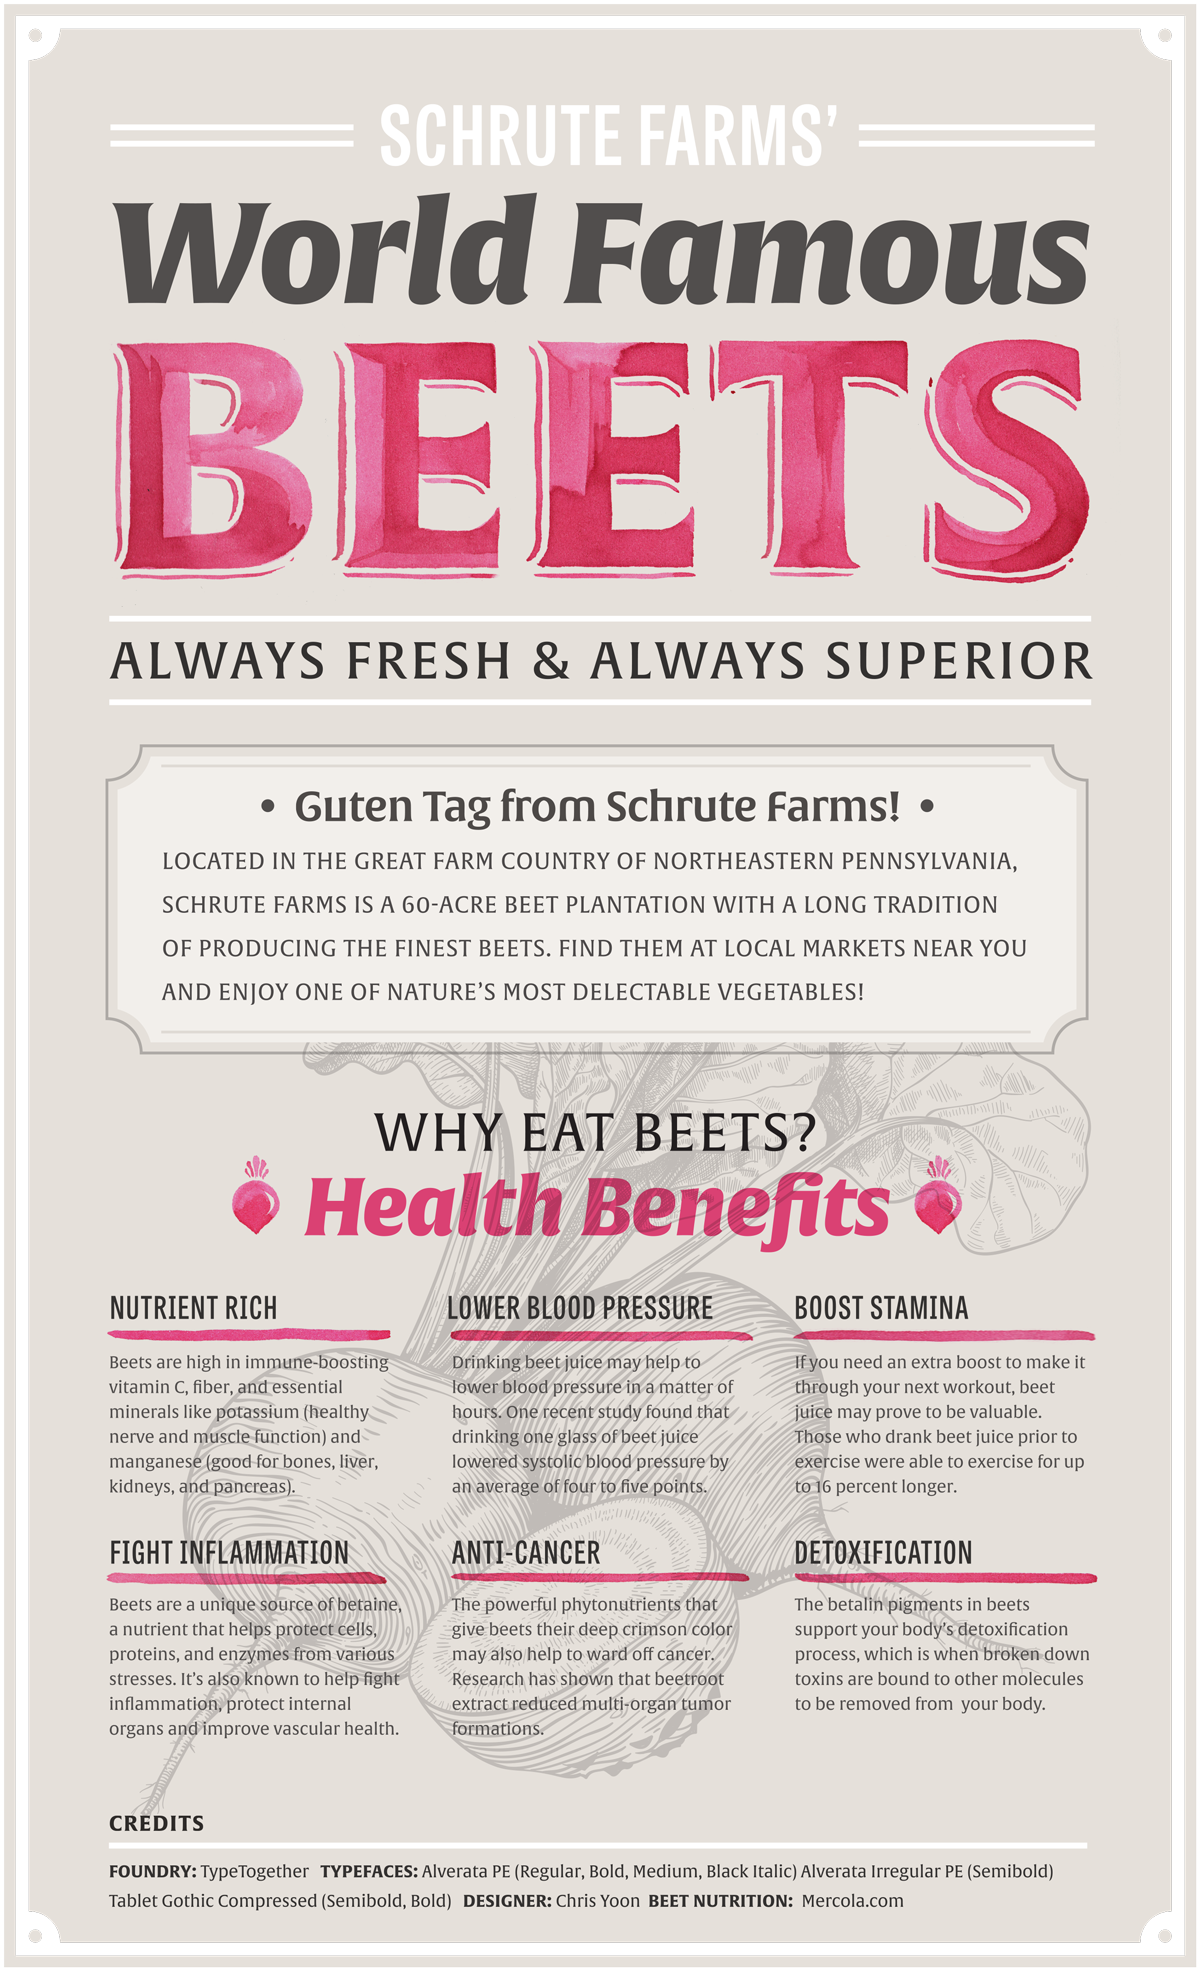 Schrute Farms' World Famous Beets designed by Chris Yoon